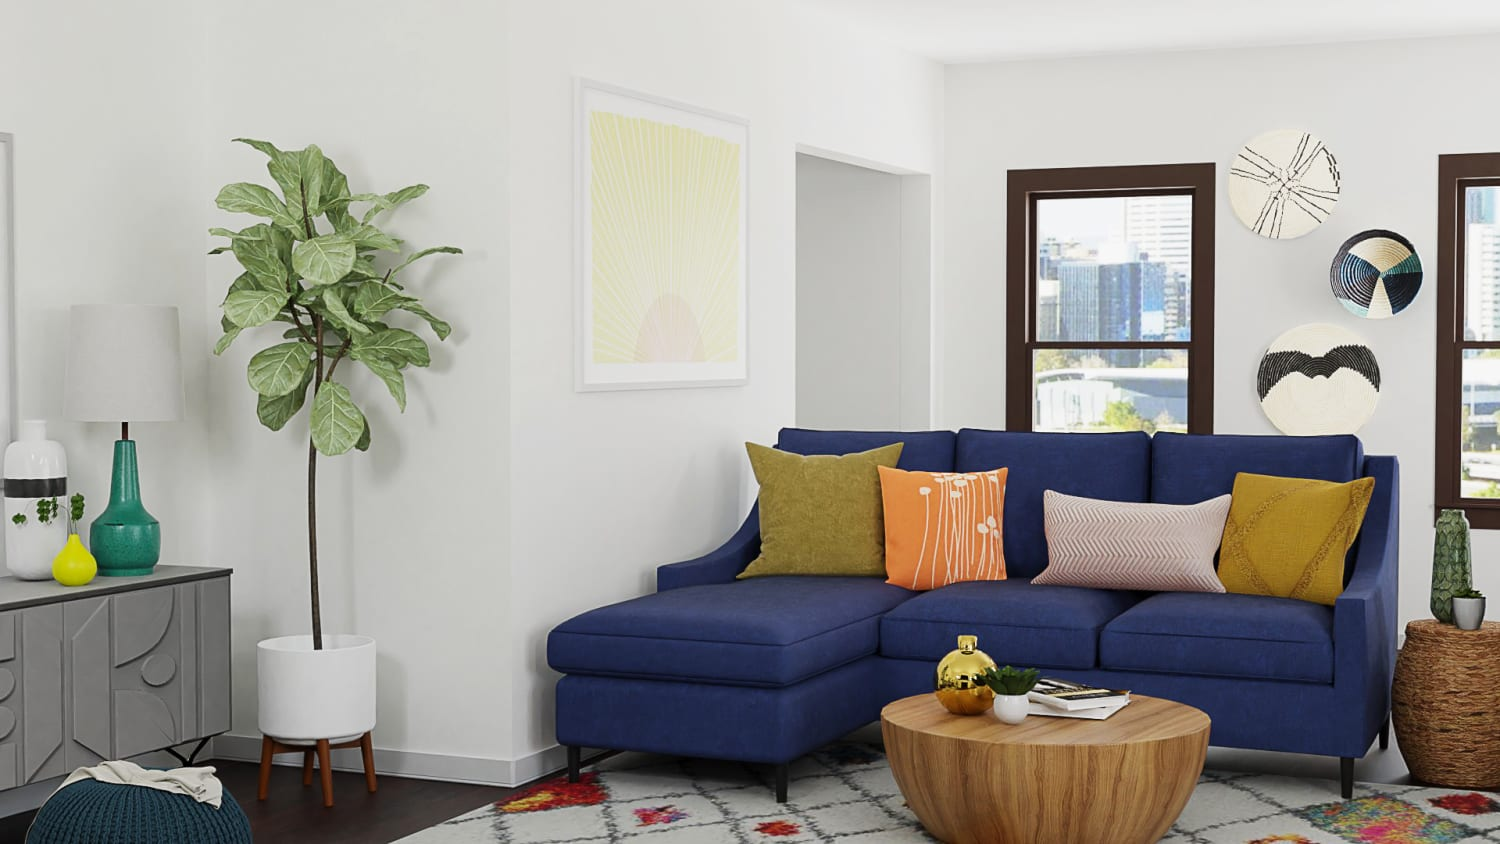 Bright Energizing Color:  Mid-Century Retro Living Room Design By Spacejoy